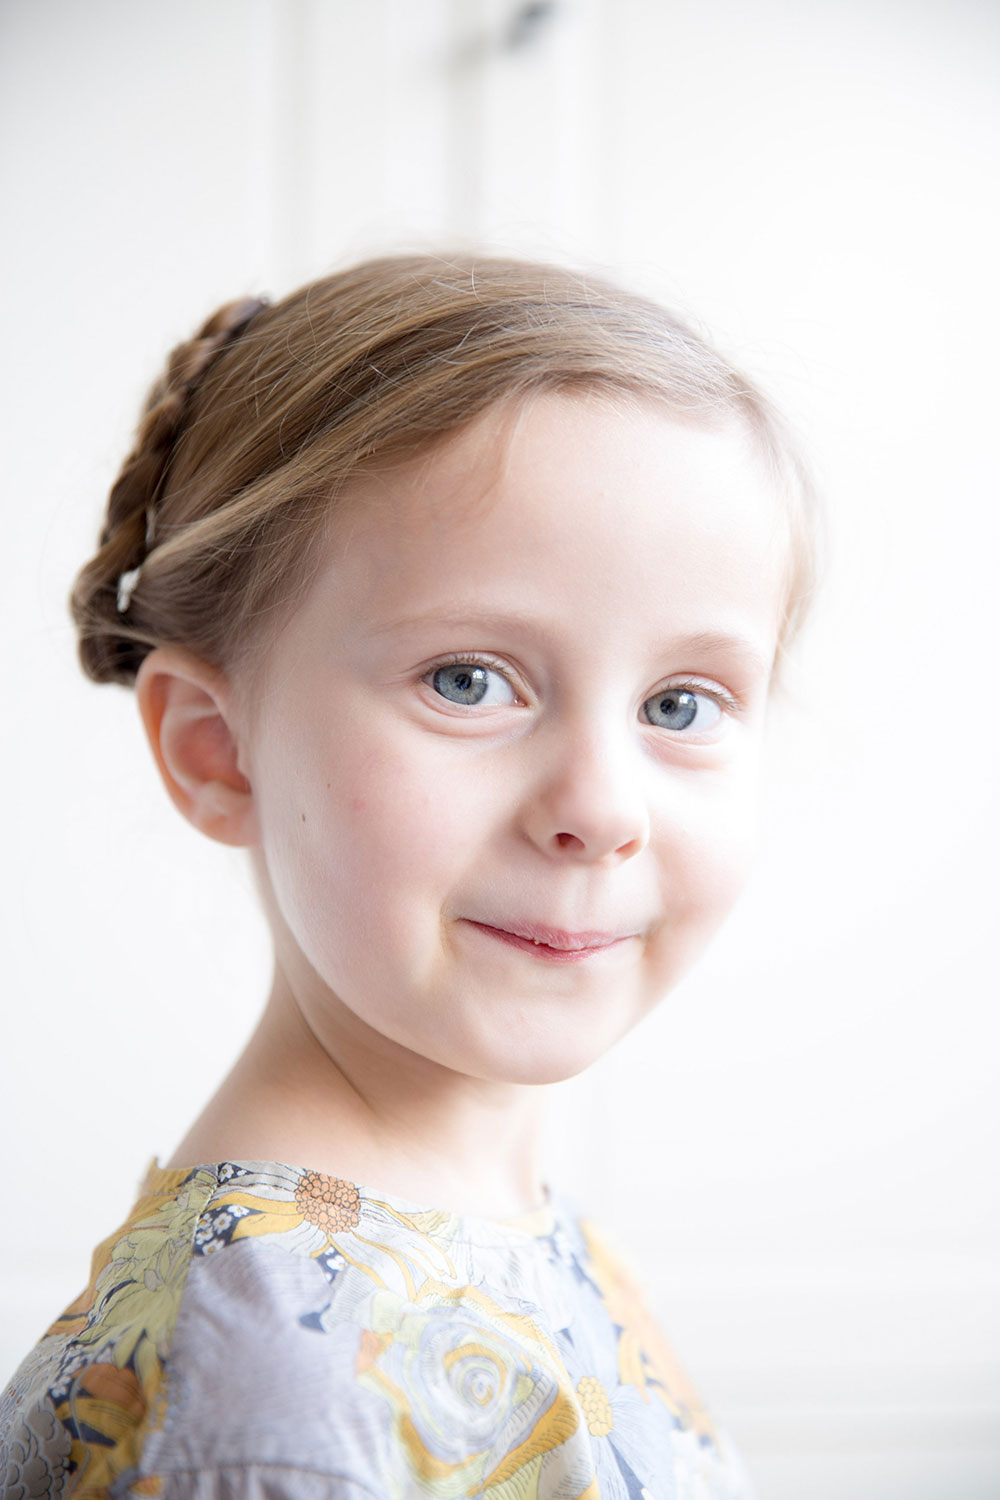 Hair Style Double Pinned Up Braids Babyccino Kids Daily